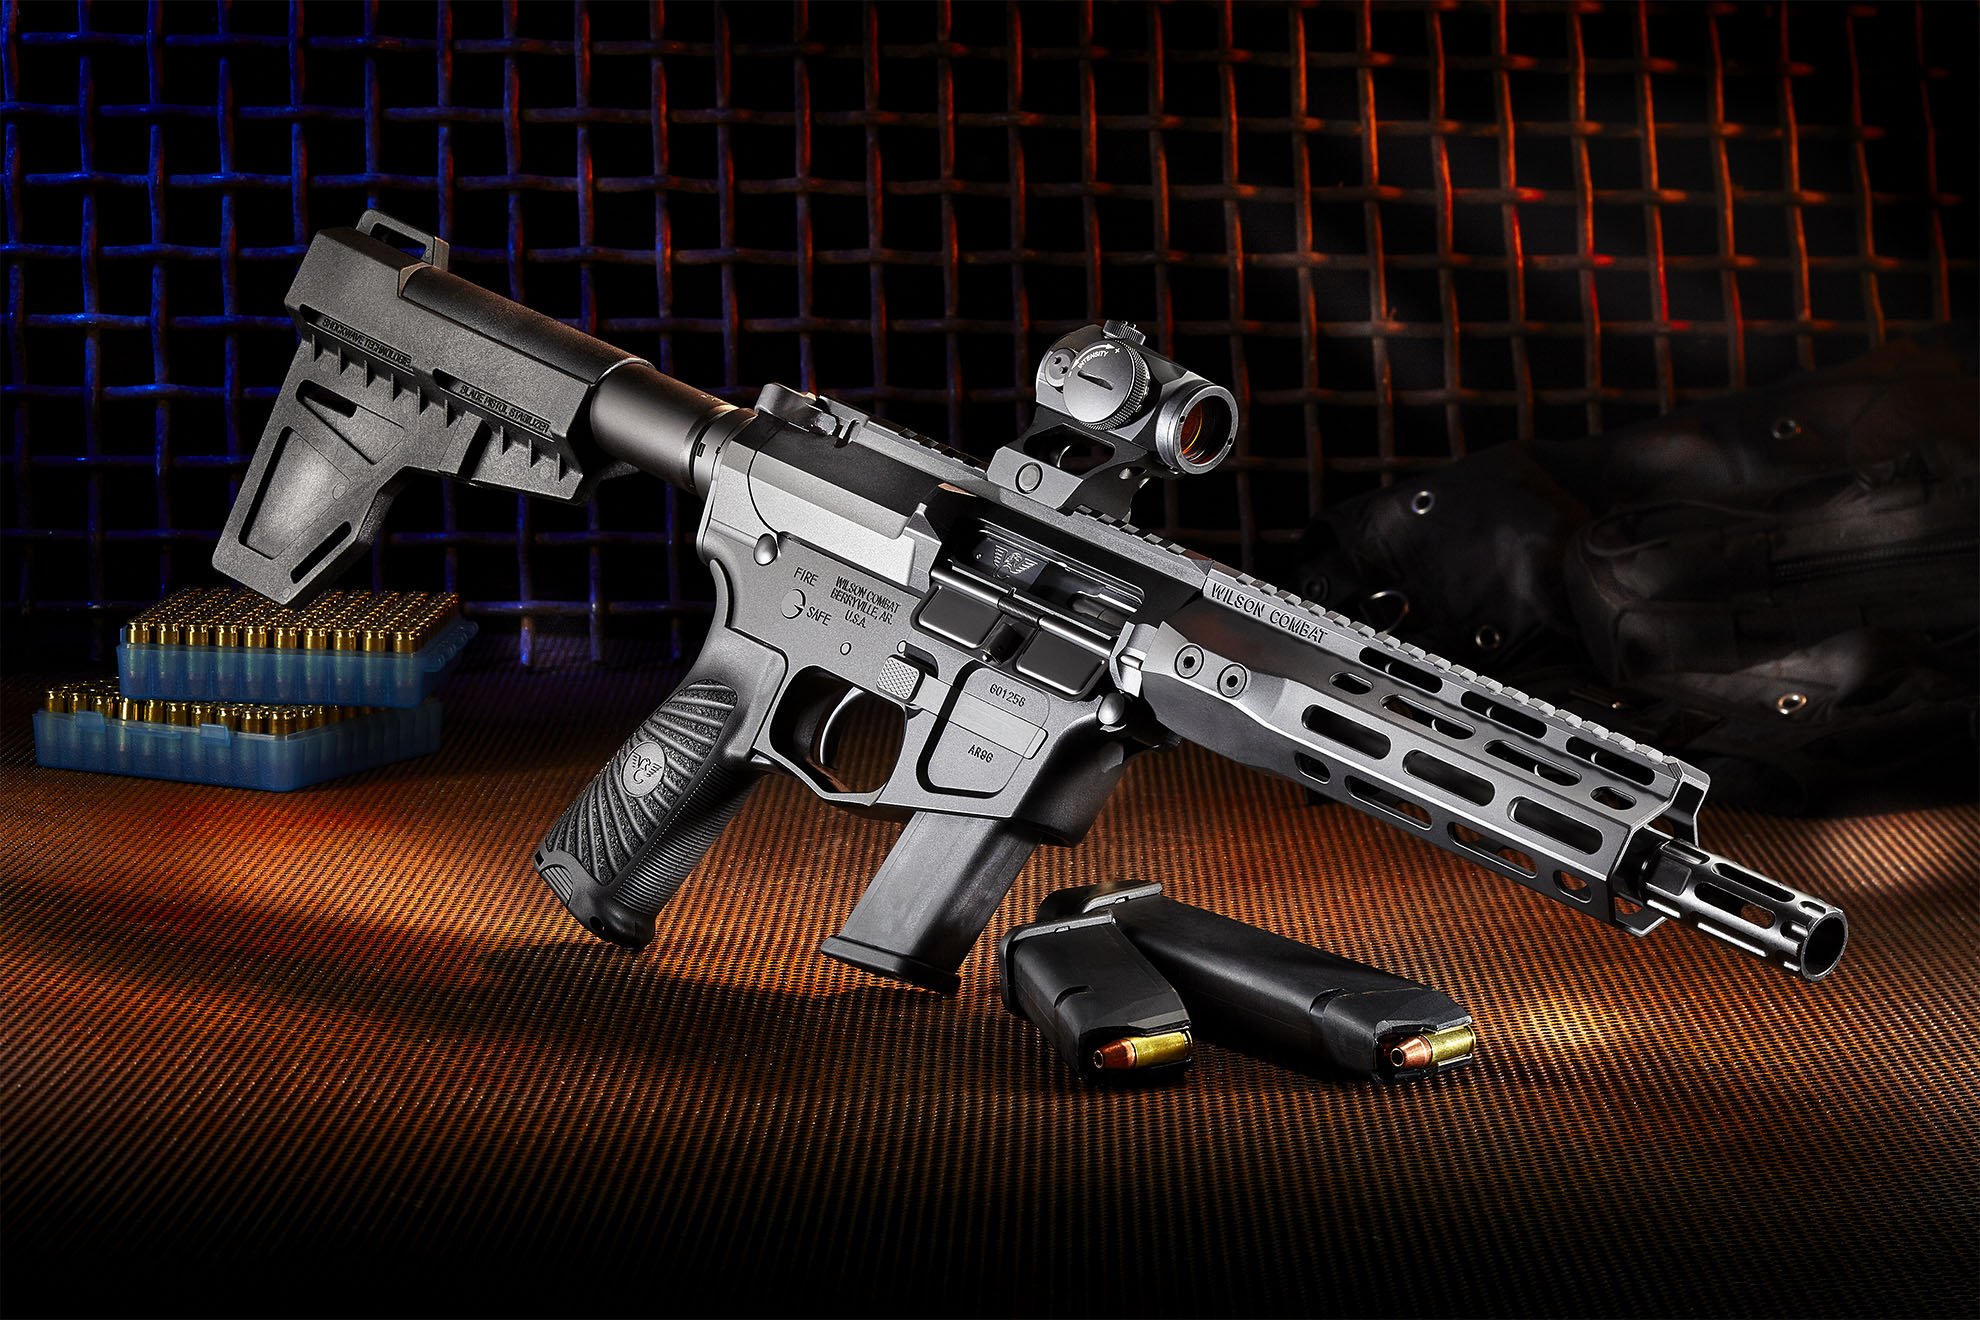 WILSON COMBAT DEBUTS THE AR9X PISTOL CALIBER AR SERIES OF FIREARMS